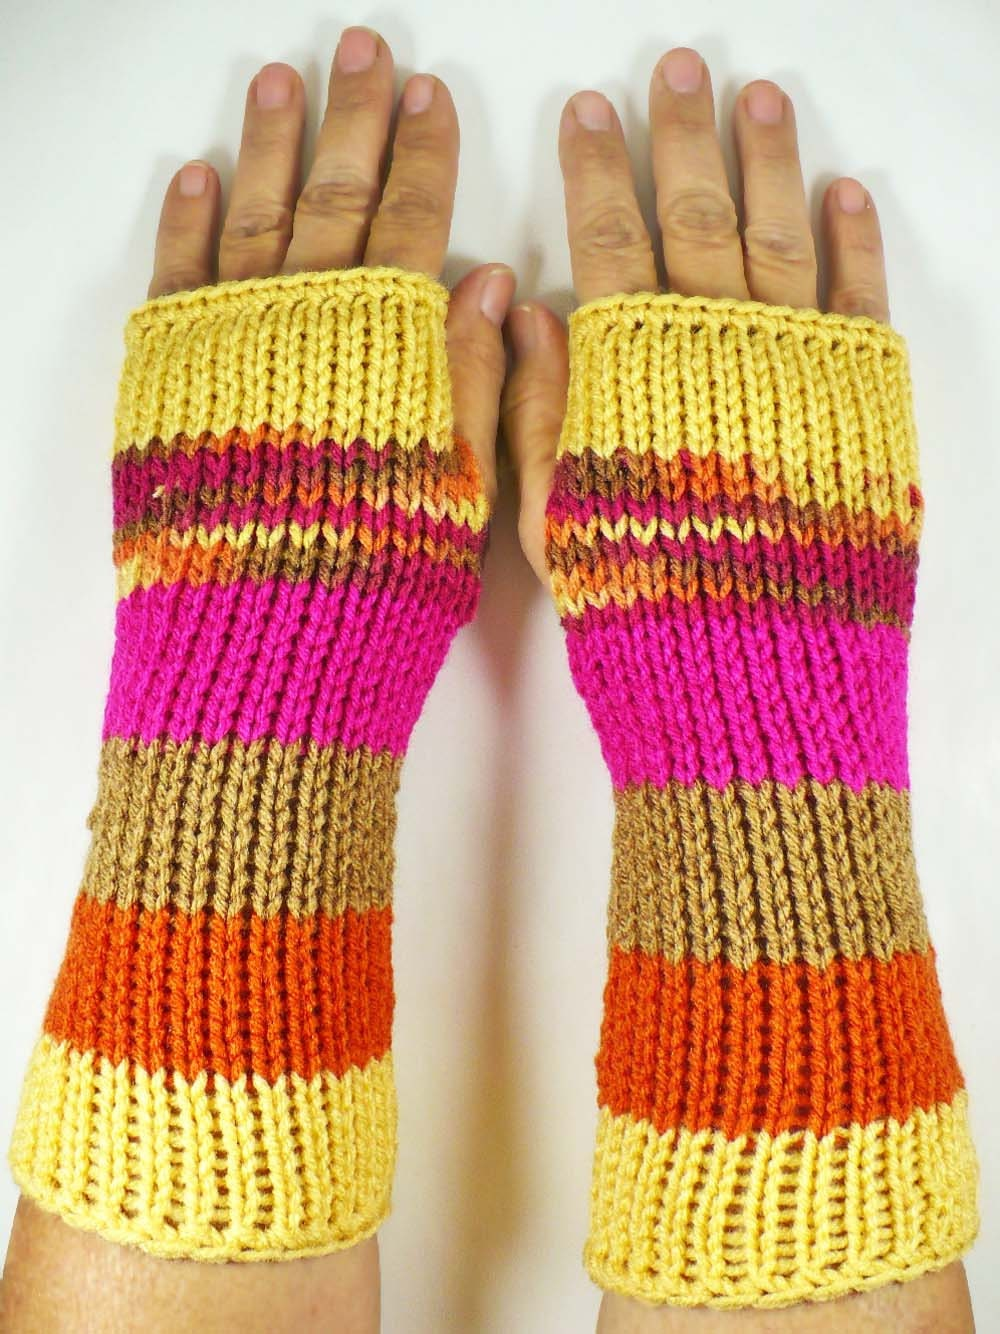 Knit Fingerless Gloves Knit Arm Warmers Knit Wrist Warmers Knit Hand Warmers Knit Fingerless Mittens Yellow Brown Fuchsia Orange - Nothingbutstring